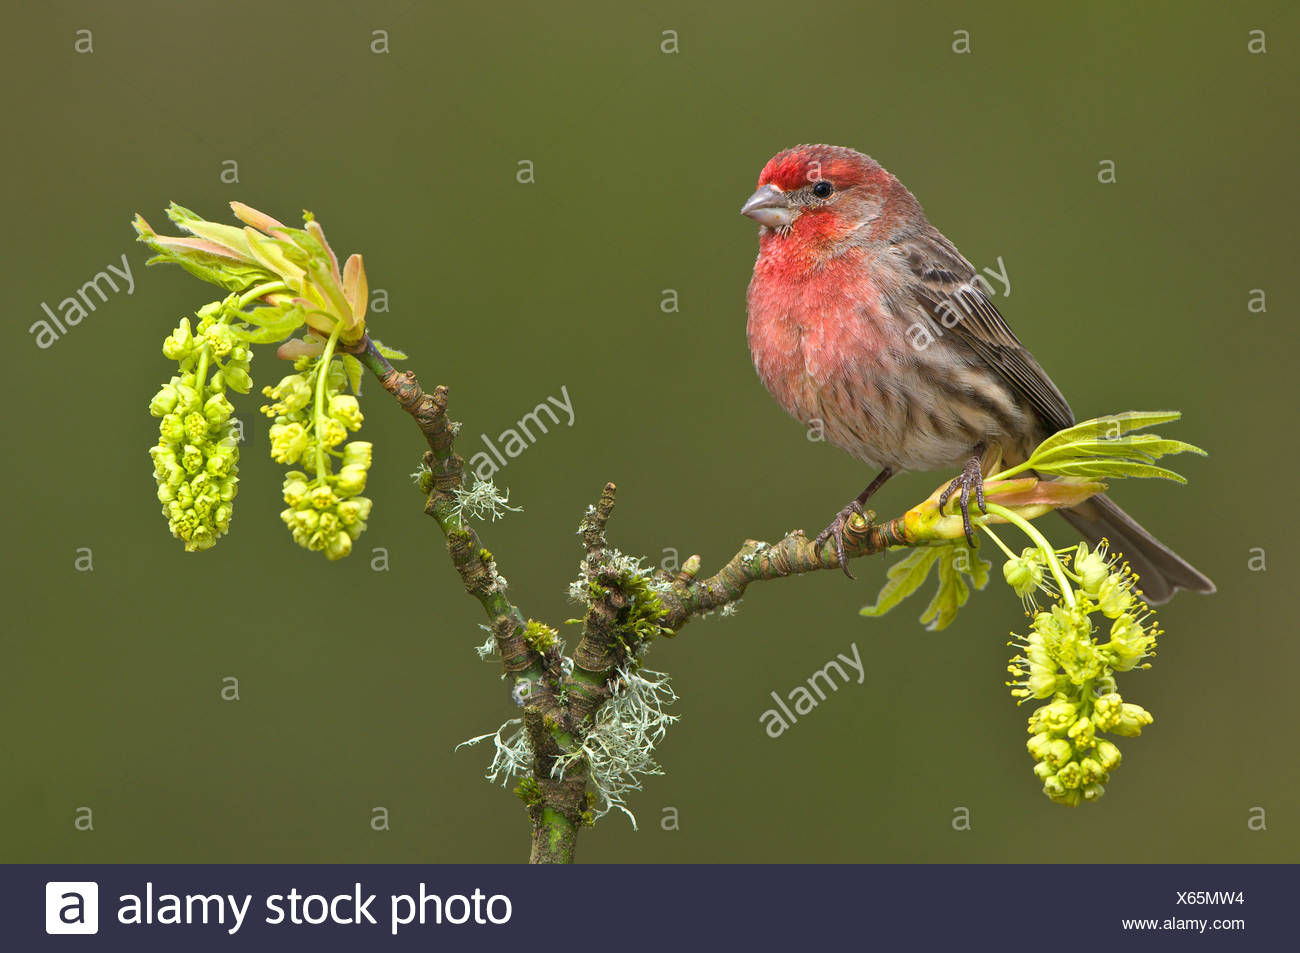 House finch (Carpodacus mexicanus) on budding maple tree branch, Victoria, Vancouver Island, British Columbia, Canada - Stock Image